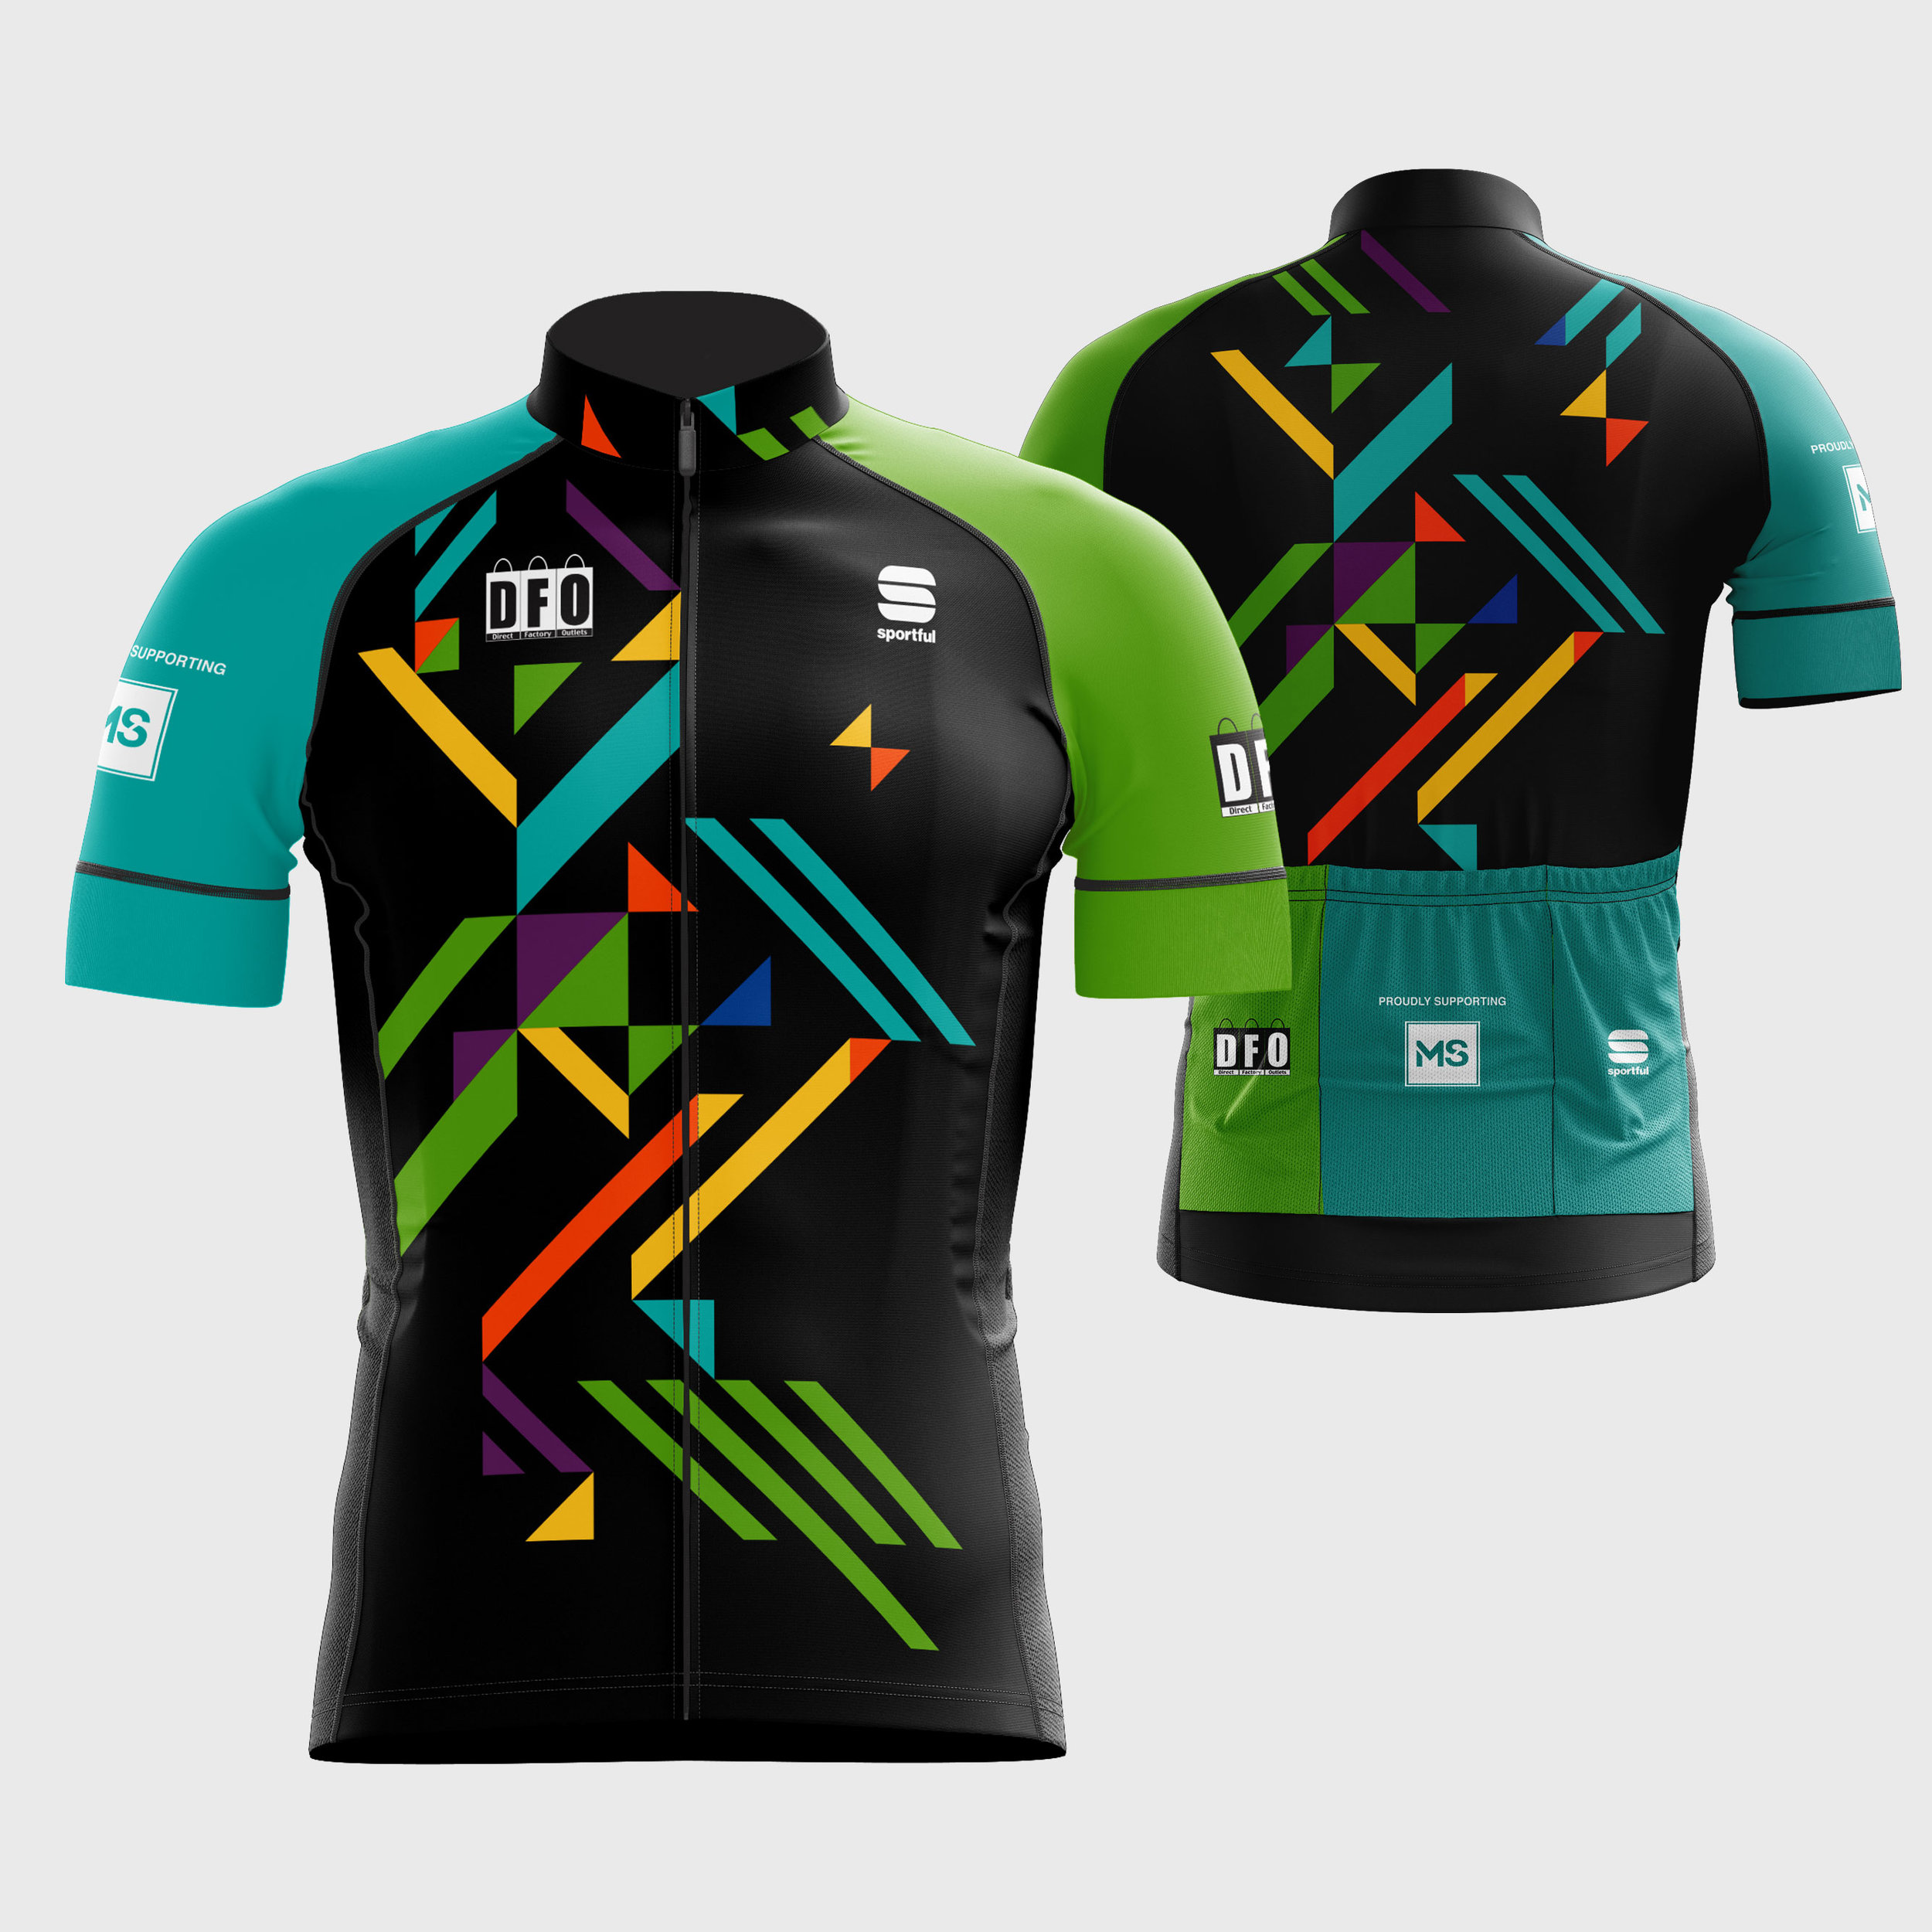 DFO cycling kit manufactured by Sportful